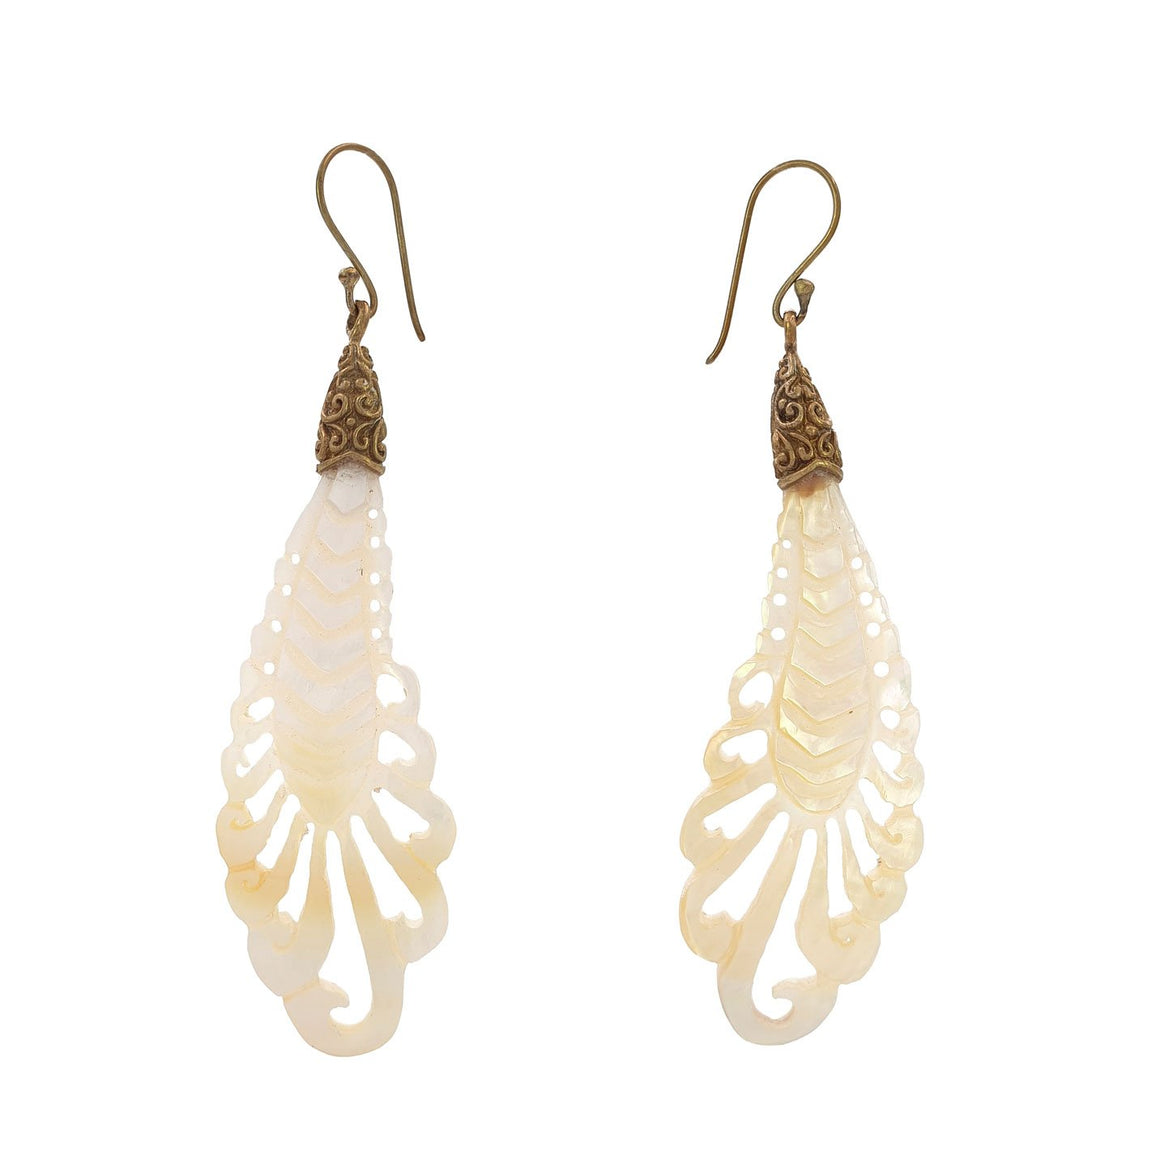 Earring Balinese Carving Feather